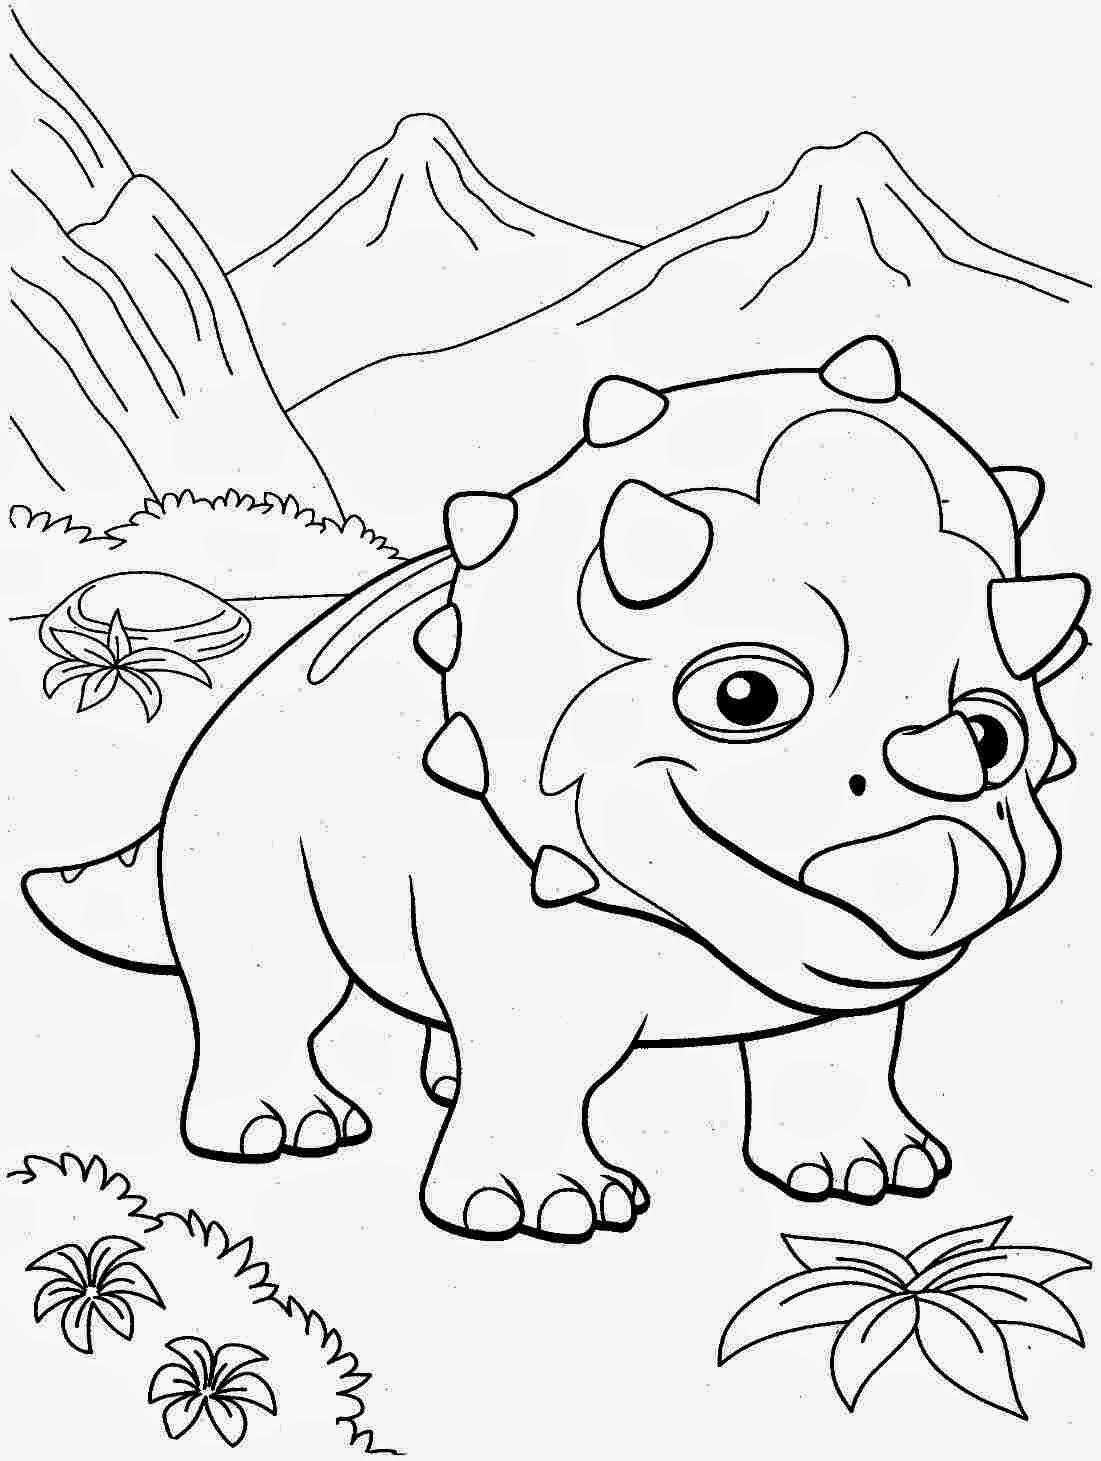 colouring dinosaur pictures 35 free printable dinosaur coloring pages scribblefun pictures dinosaur colouring